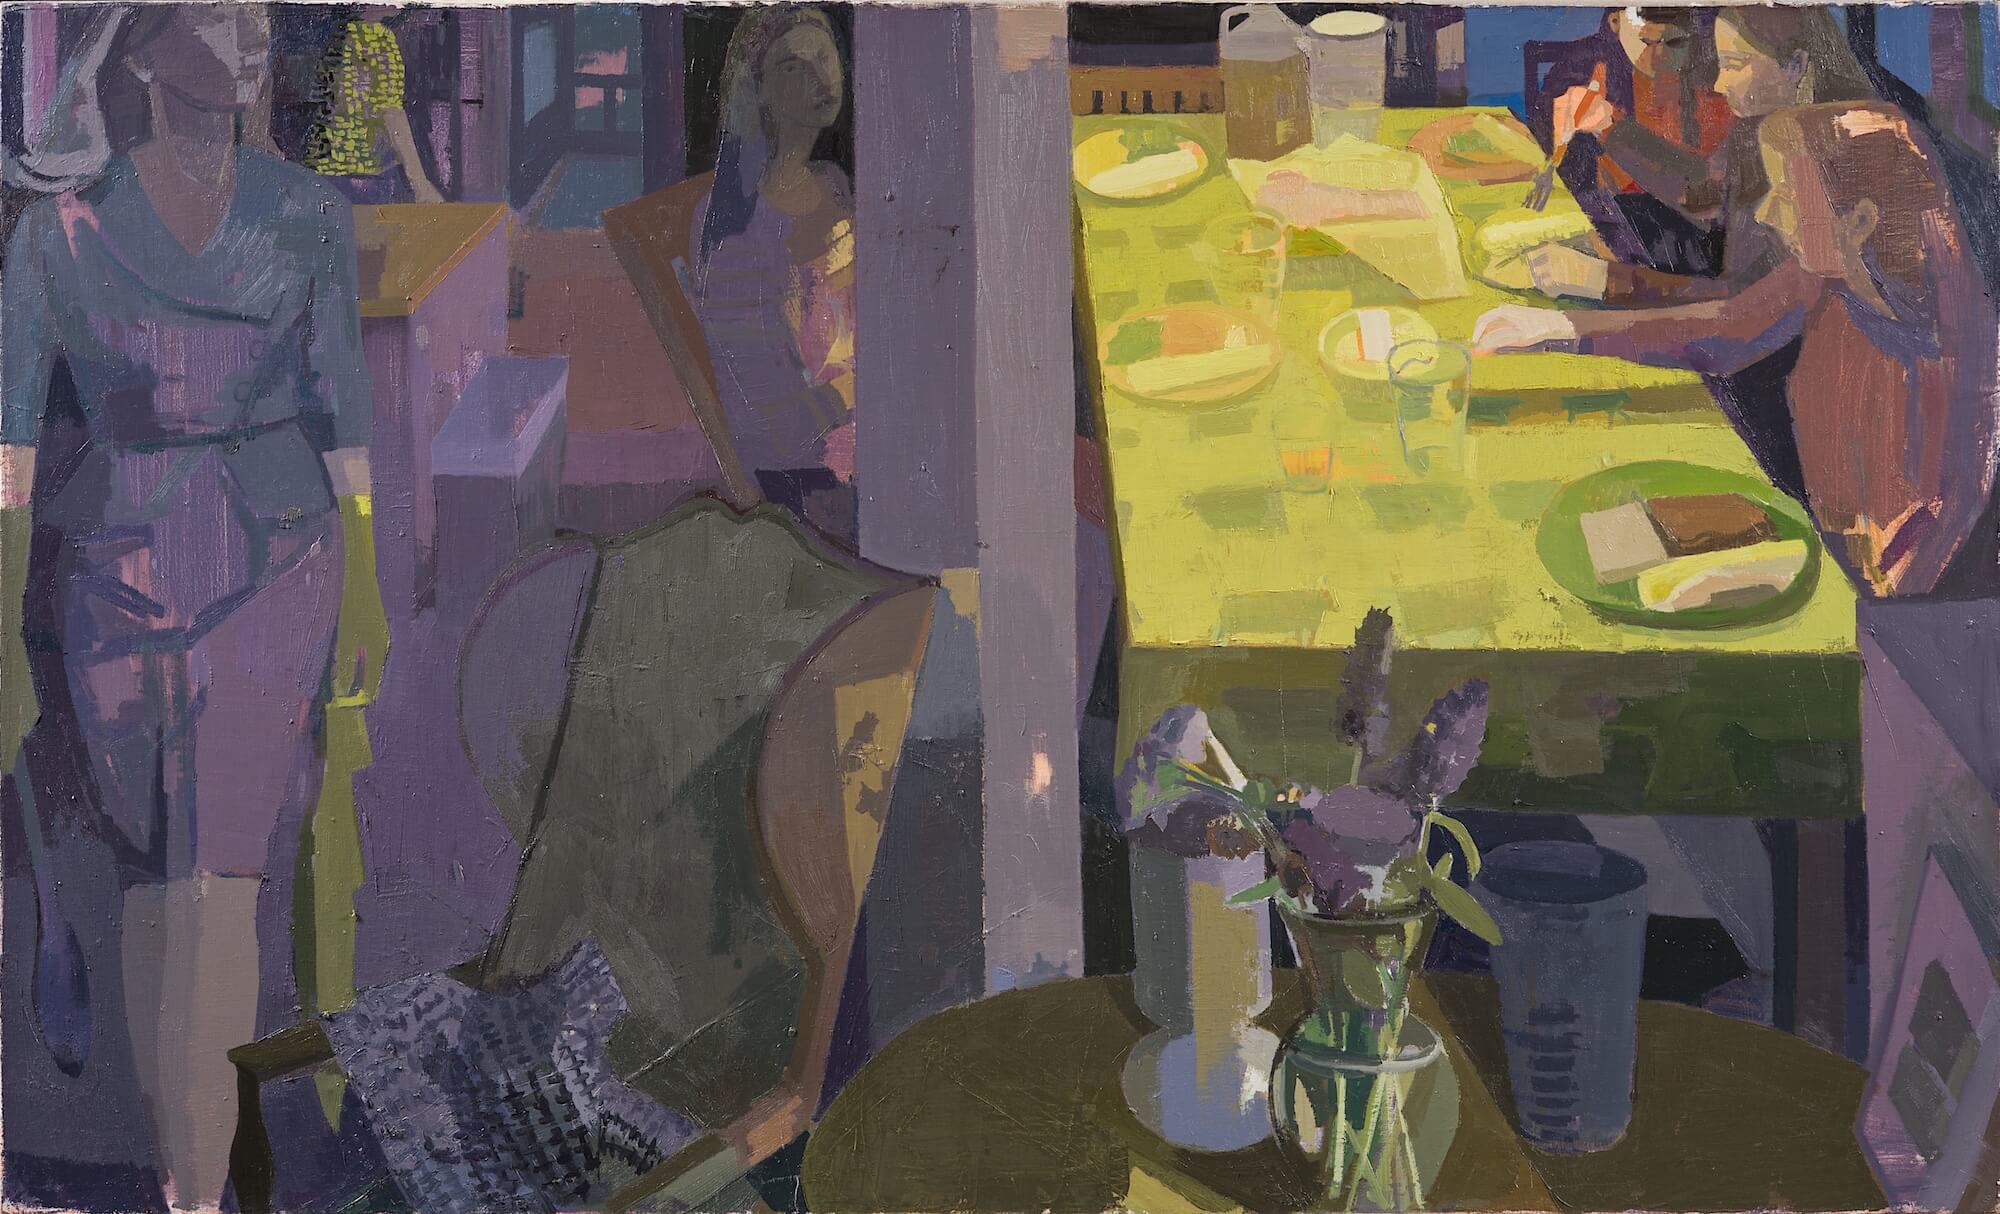 Susan Lichtman, Equinox Meal, 2016, oil on linen, 40 x 66 inches (courtesy of Steven Harvey Fine Art Projects)